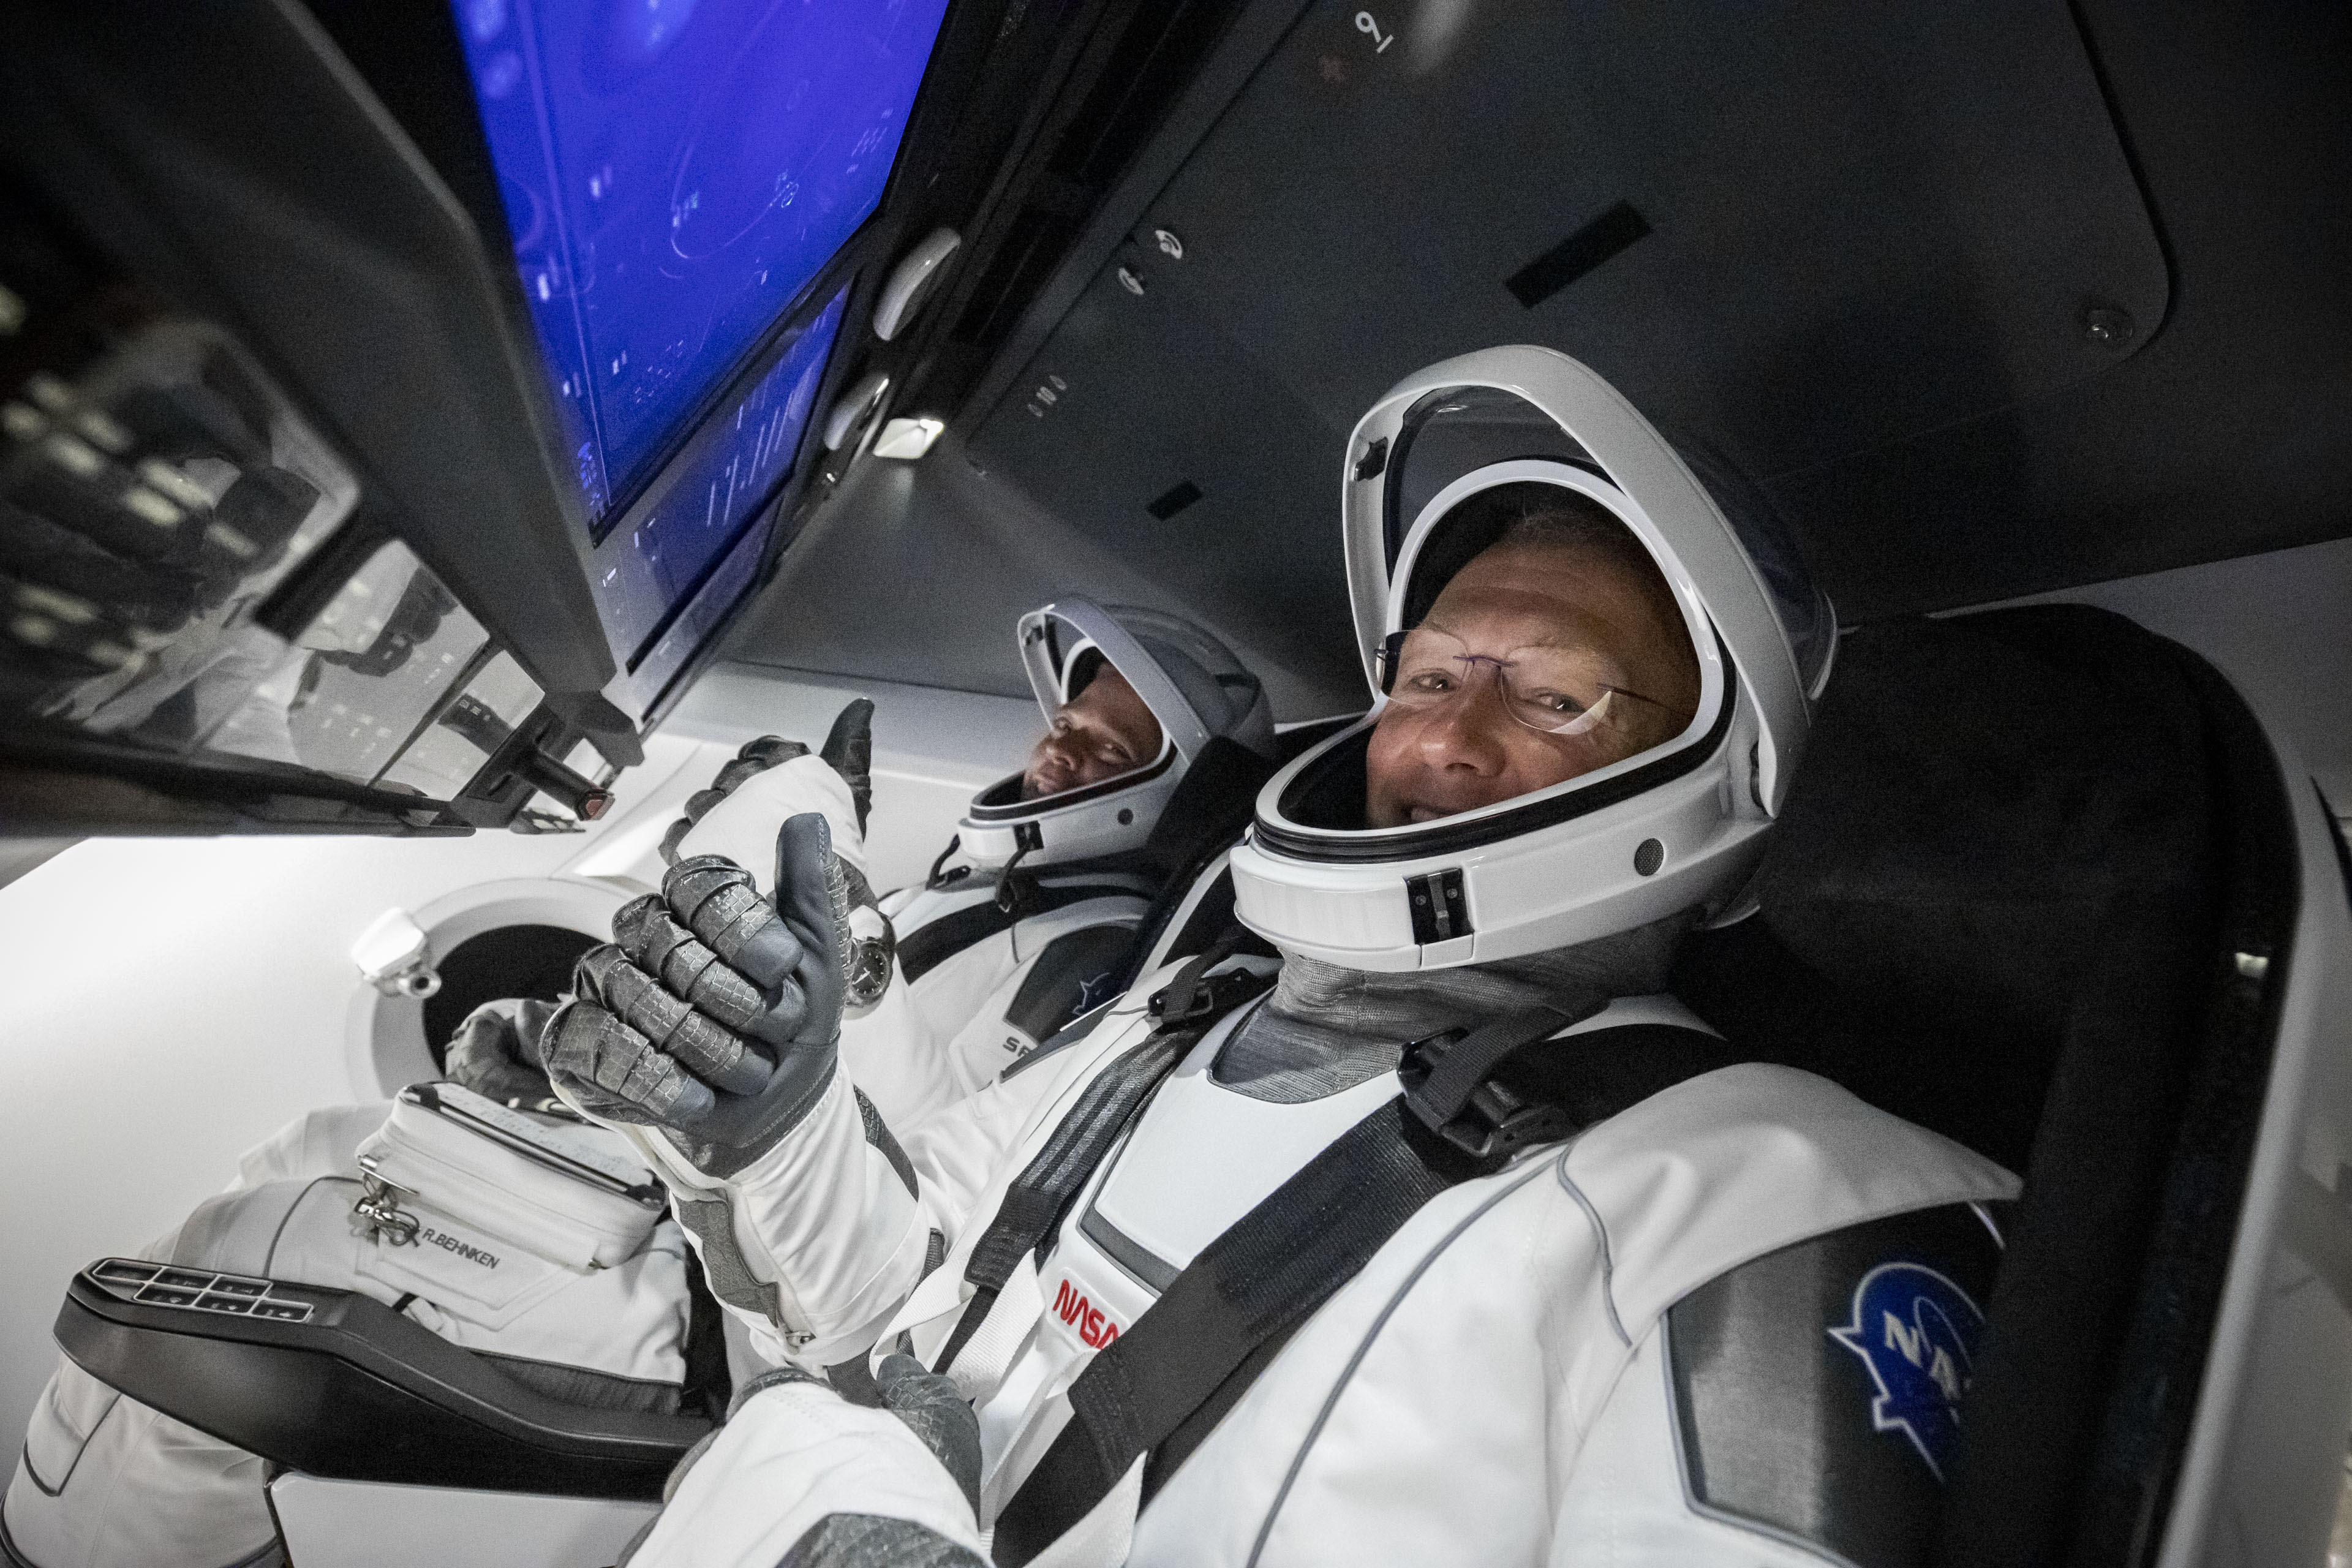 SpaceX just launched 2 astronauts into orbit. What's next for the NASA crew?